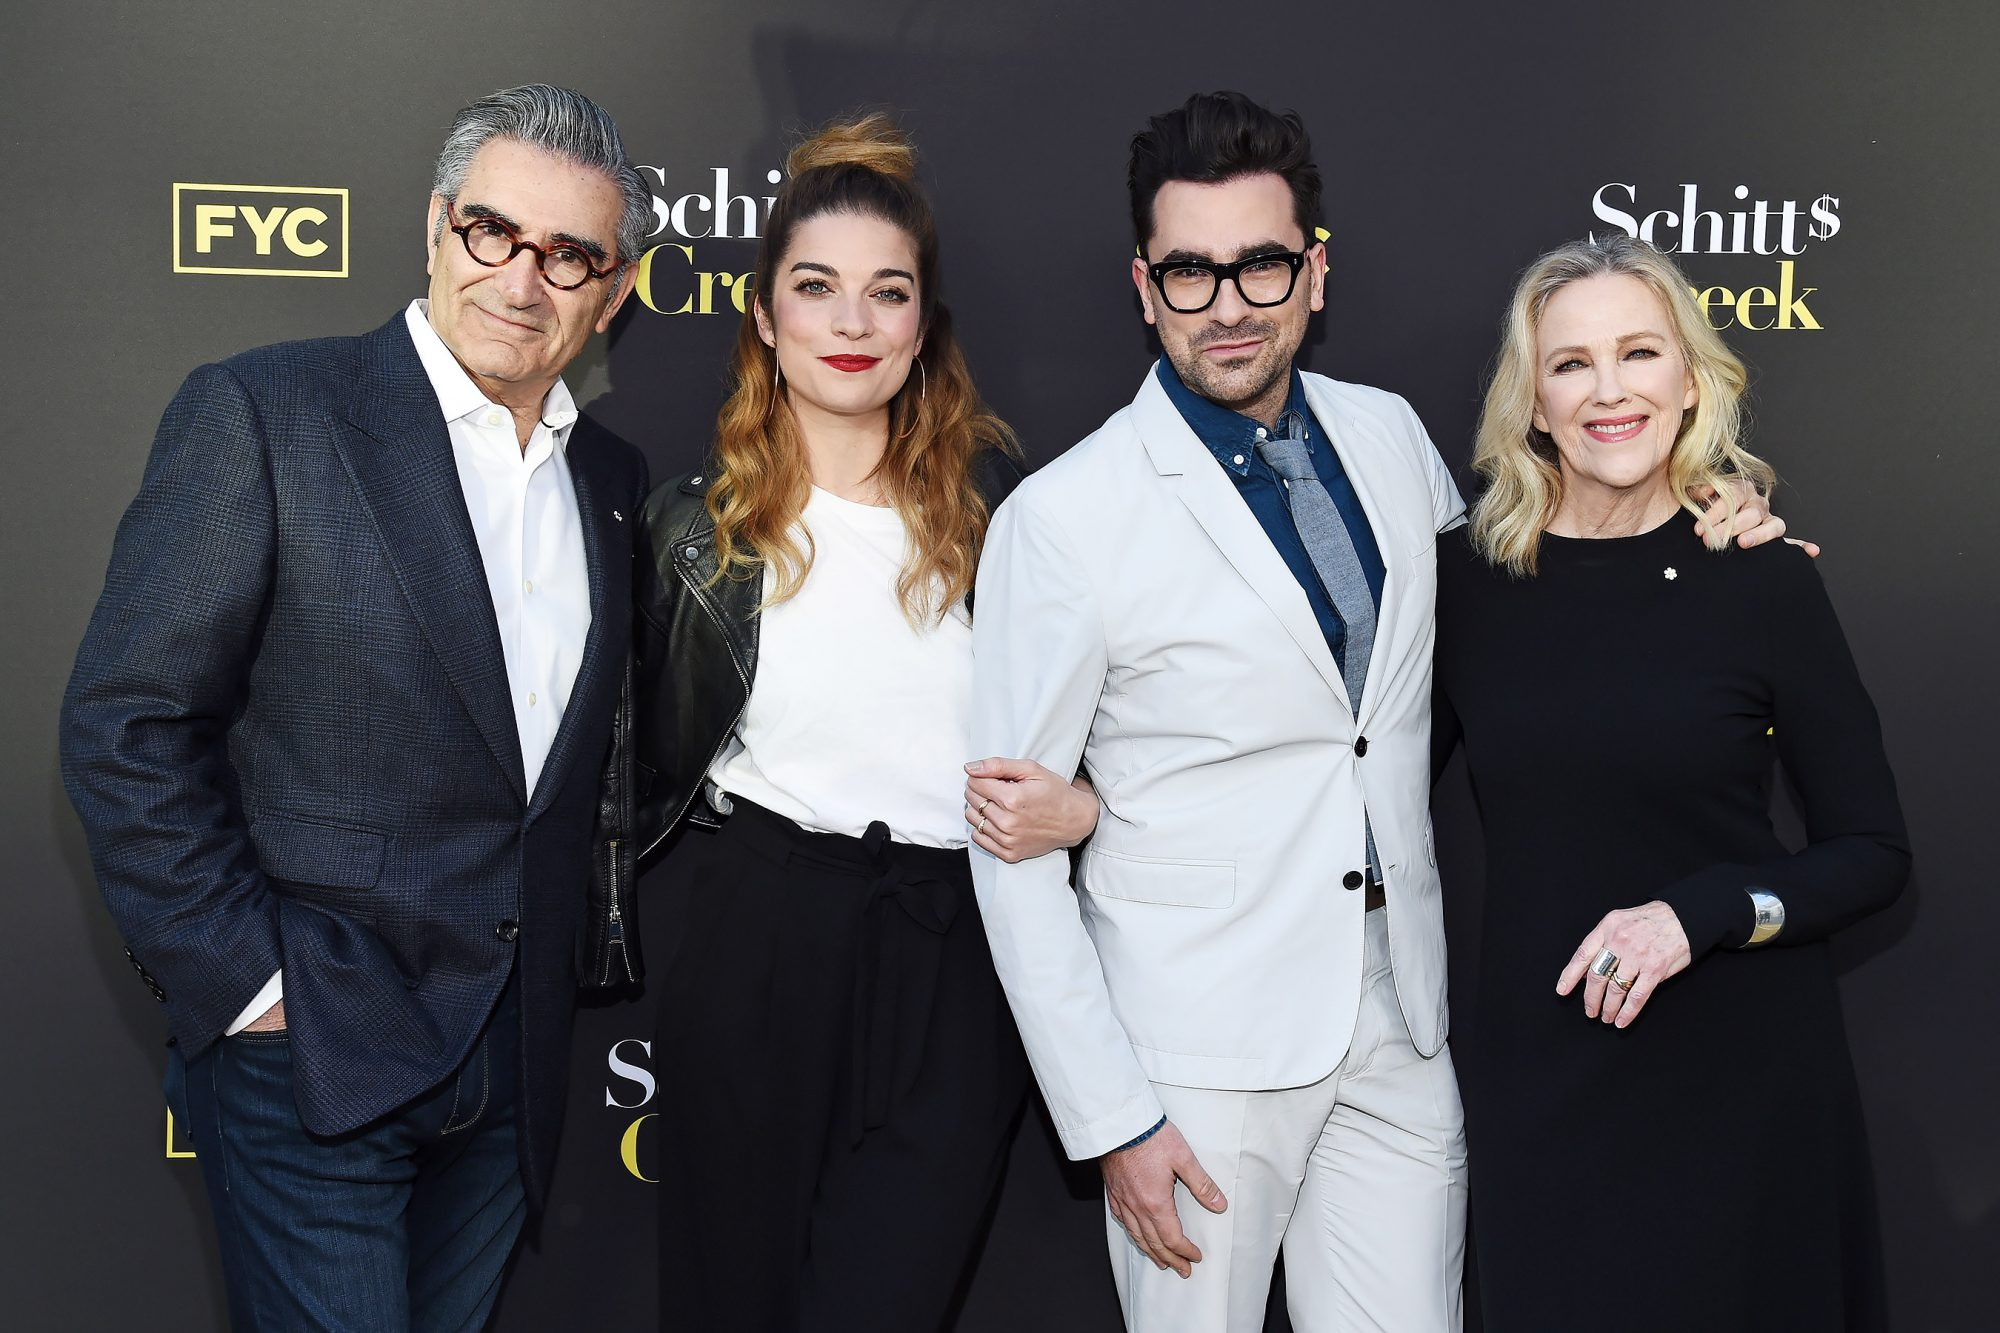 Eugene Levy, Annie Murphy, Daniel Levy and Catherine O'Hara